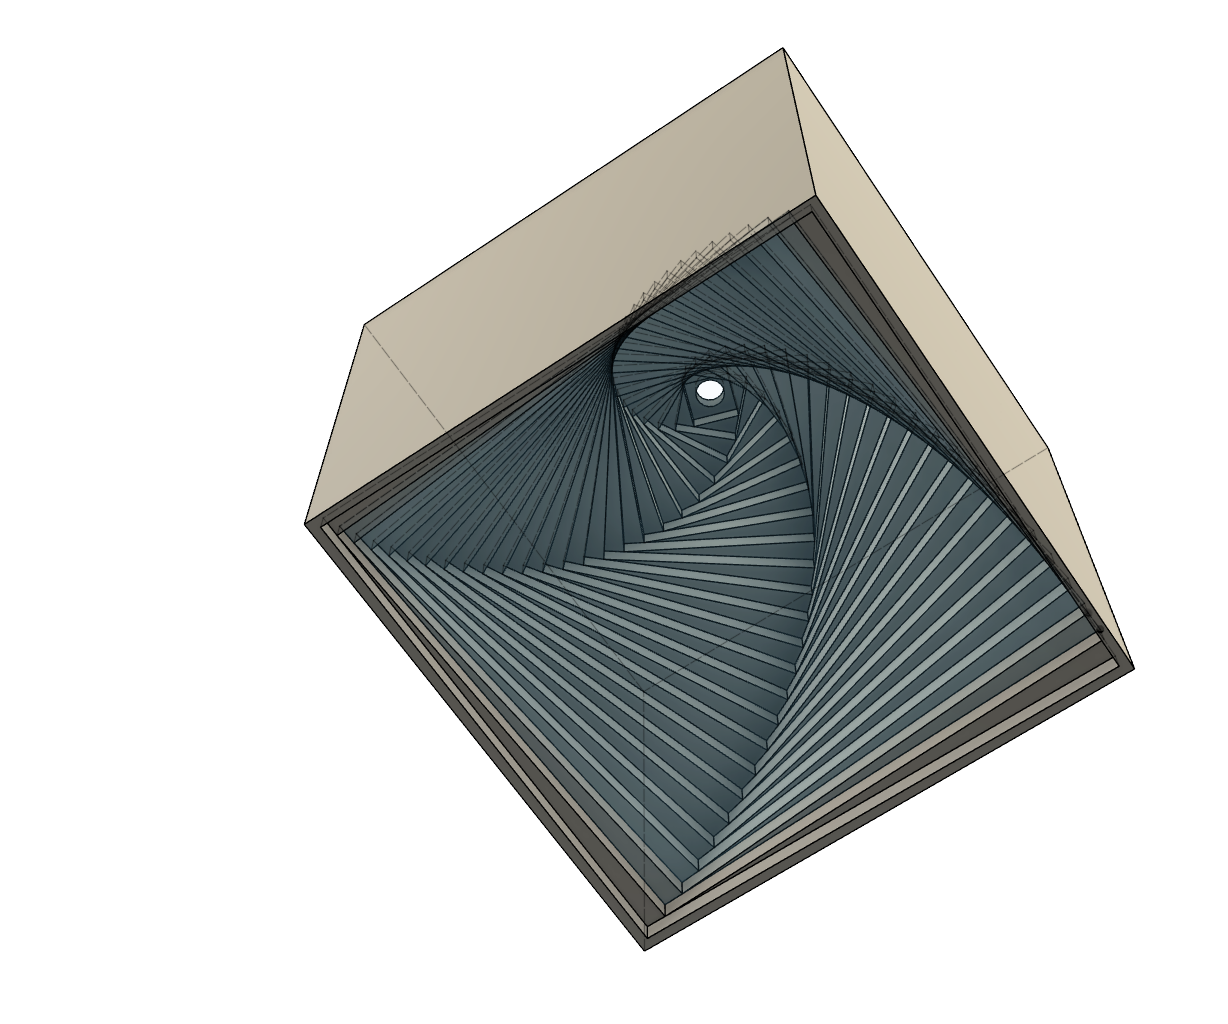 3D Printed Spiral Box Desktop Toy - Using Fusion 360